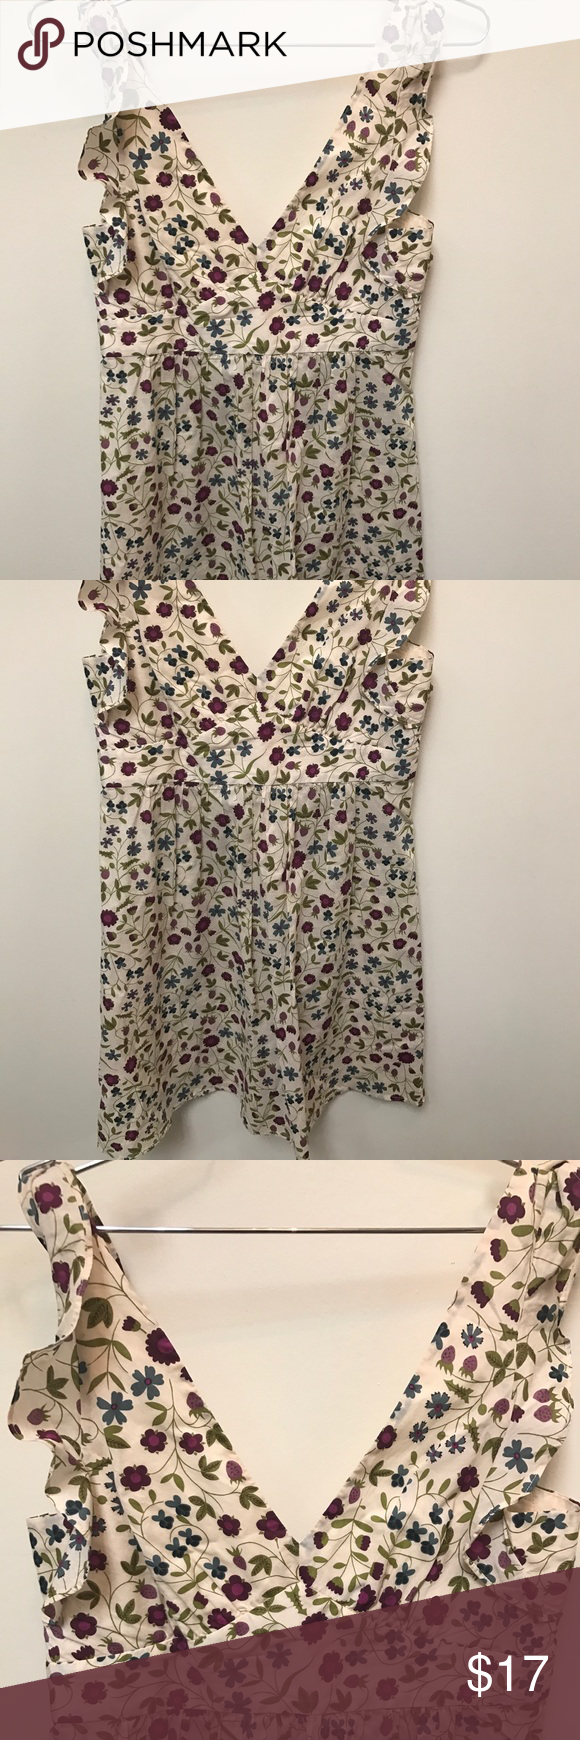 Theory floral dress size  size 0... beige floral Authentic Theory floral dress zipper closure beautiful condition Theory Dresses Midi